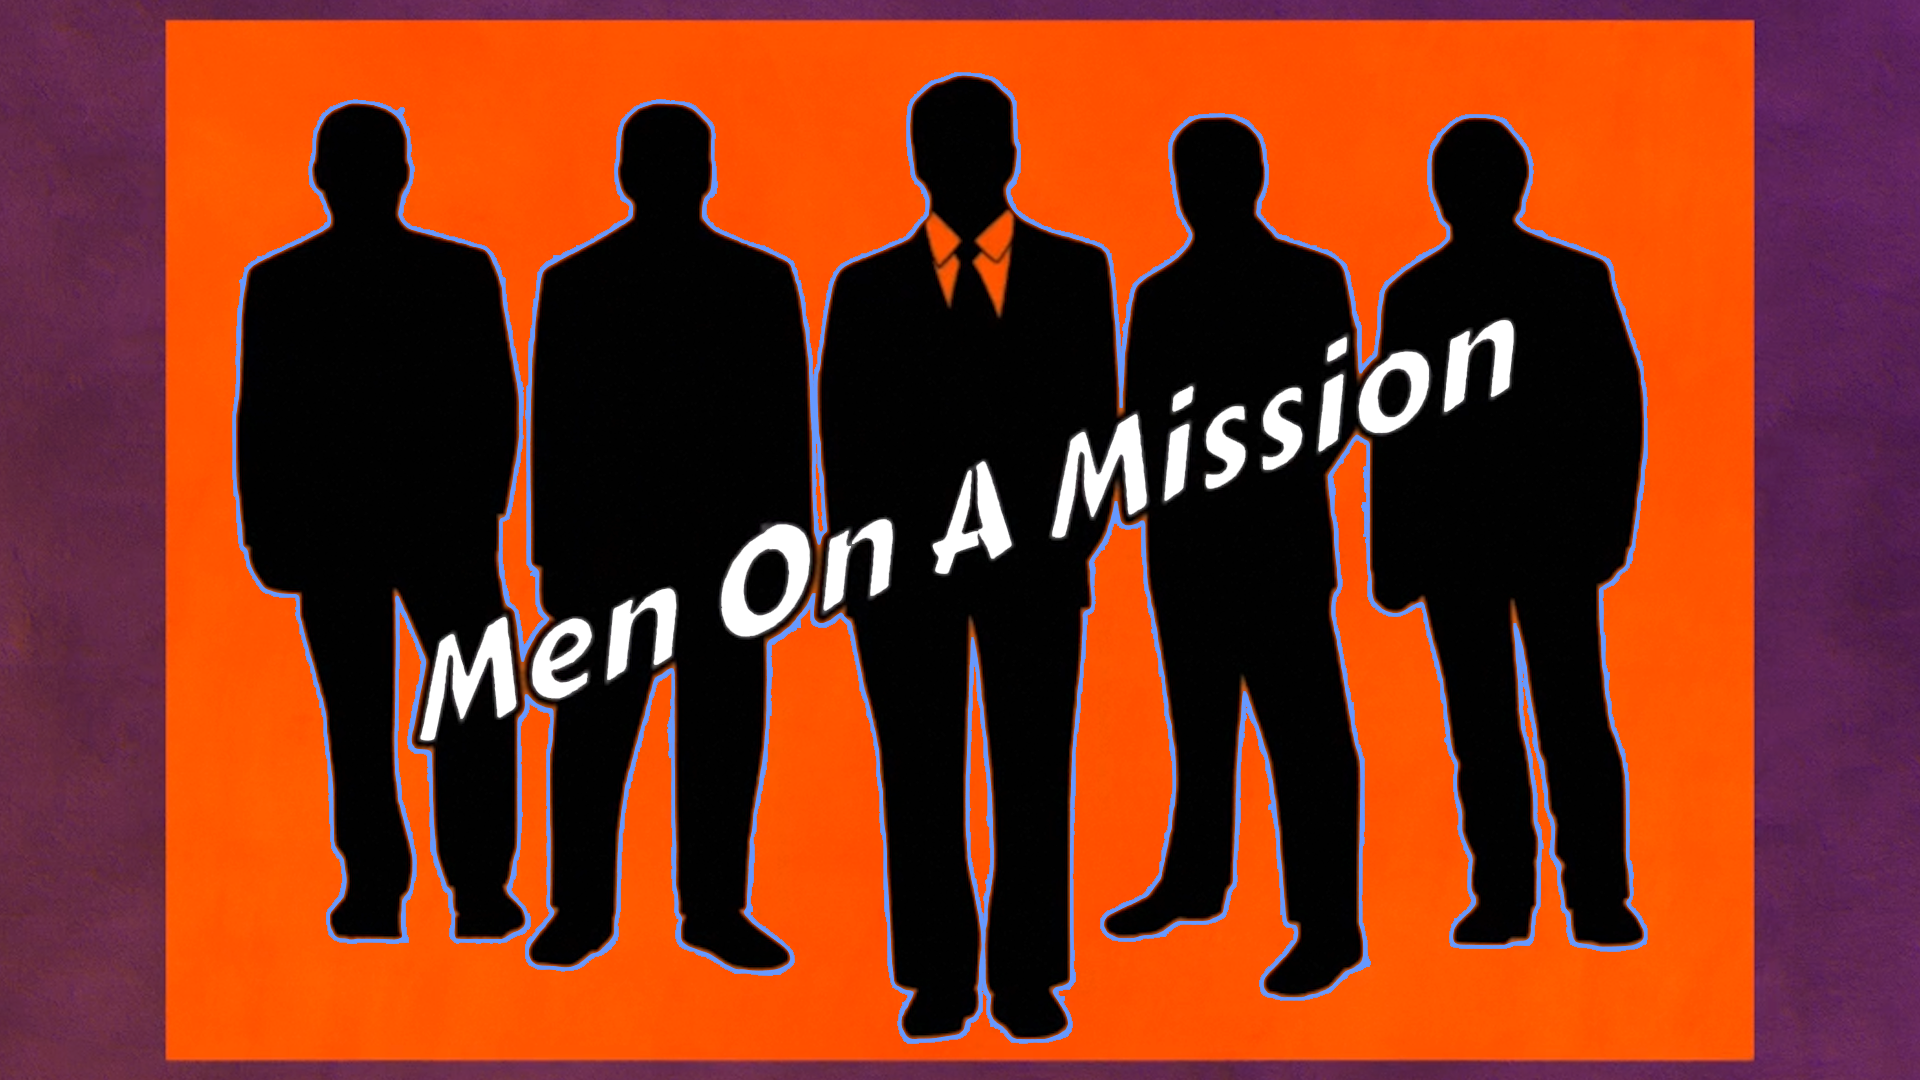 Men on a Mission S2E2